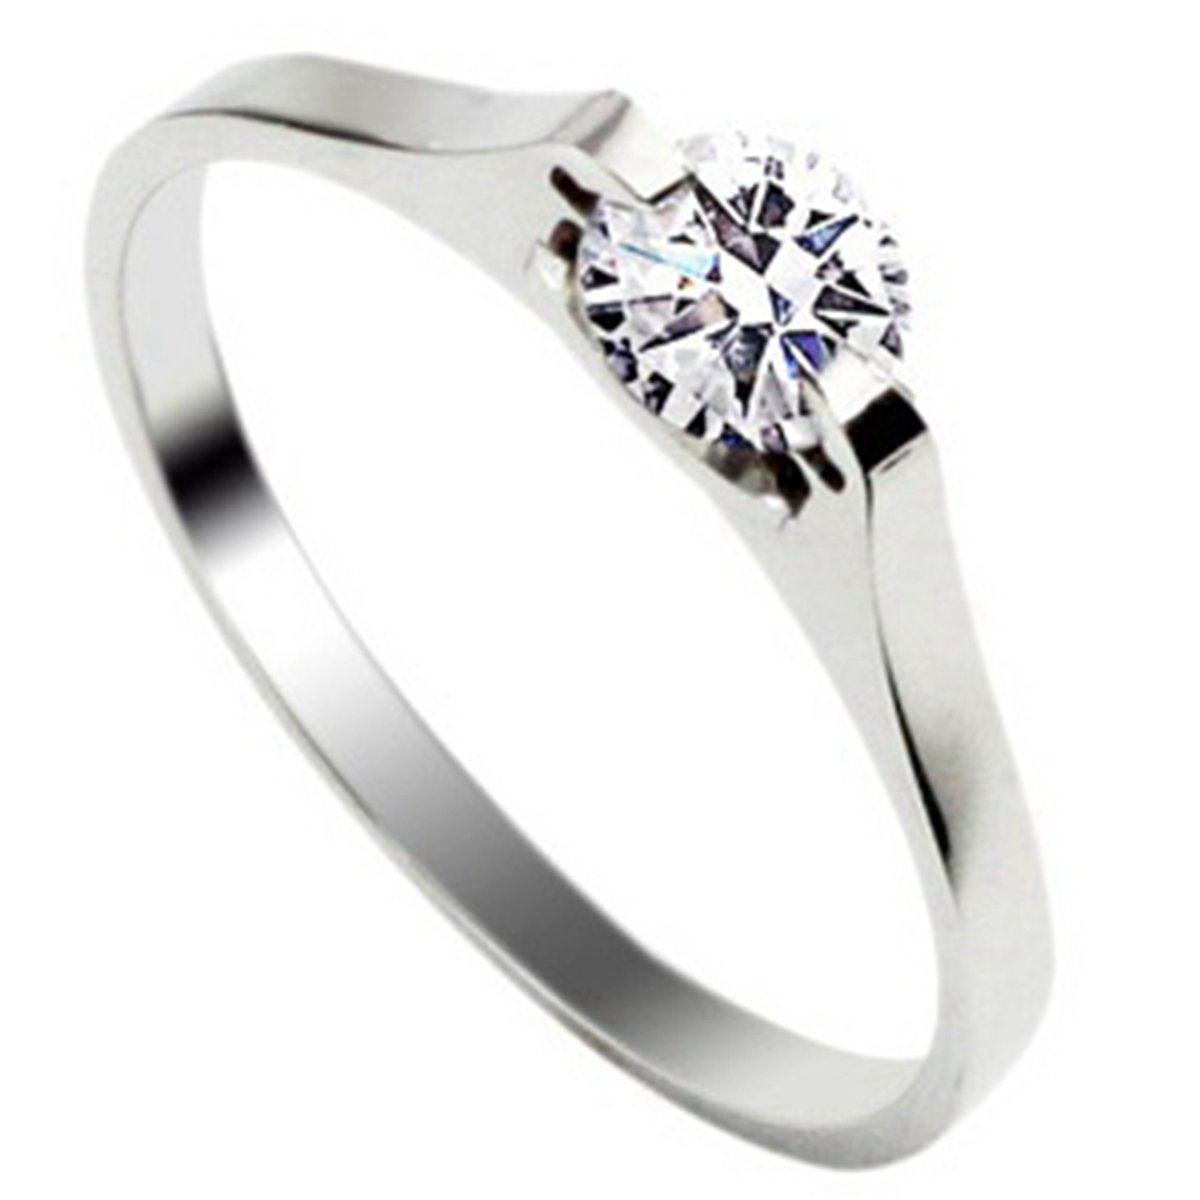 Stainless Steel Ring With Inlay Diamond For Girls Silver Tone Supreme glory ring0905A37